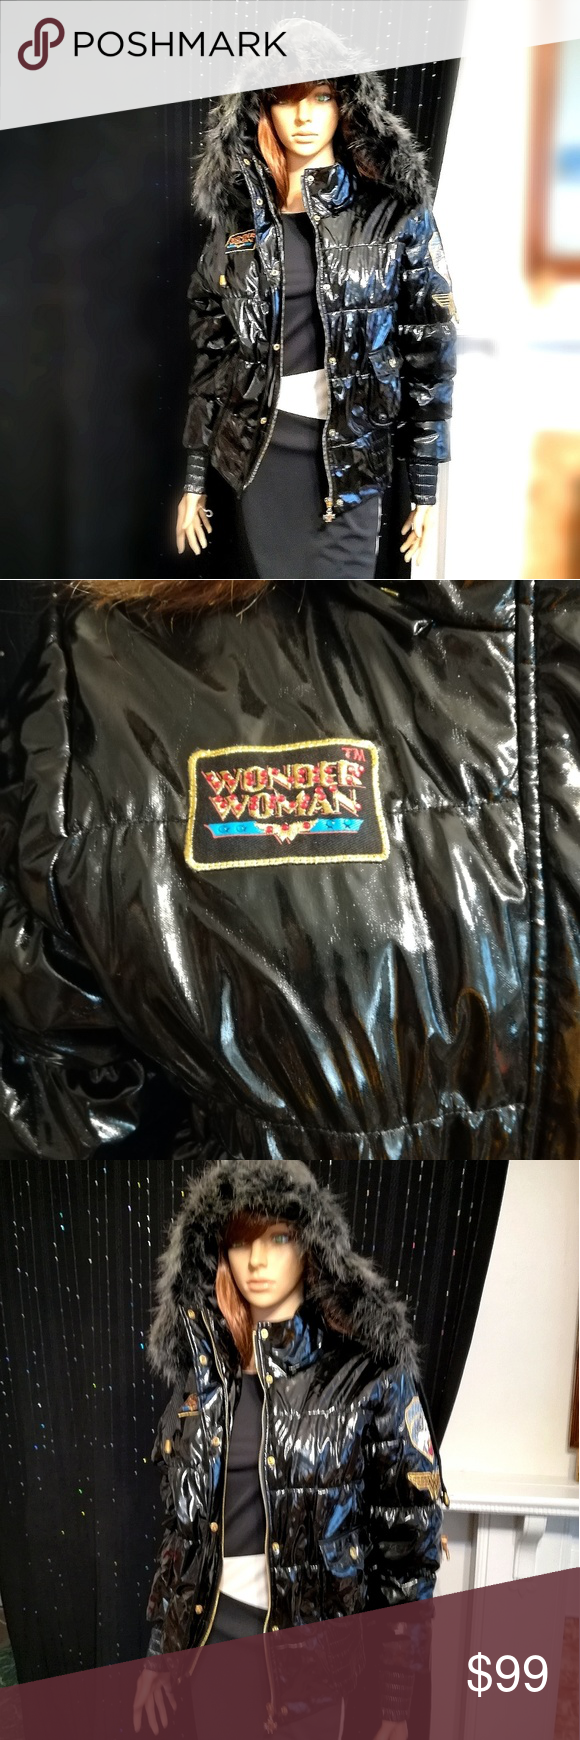 d3e3ce49e Wonder woman puffy coat Super shinny, Wonder woman authentic DC comics  puffer jacket, worn once, awesome outterwear, the size is XL GIRLS juniors,  ...